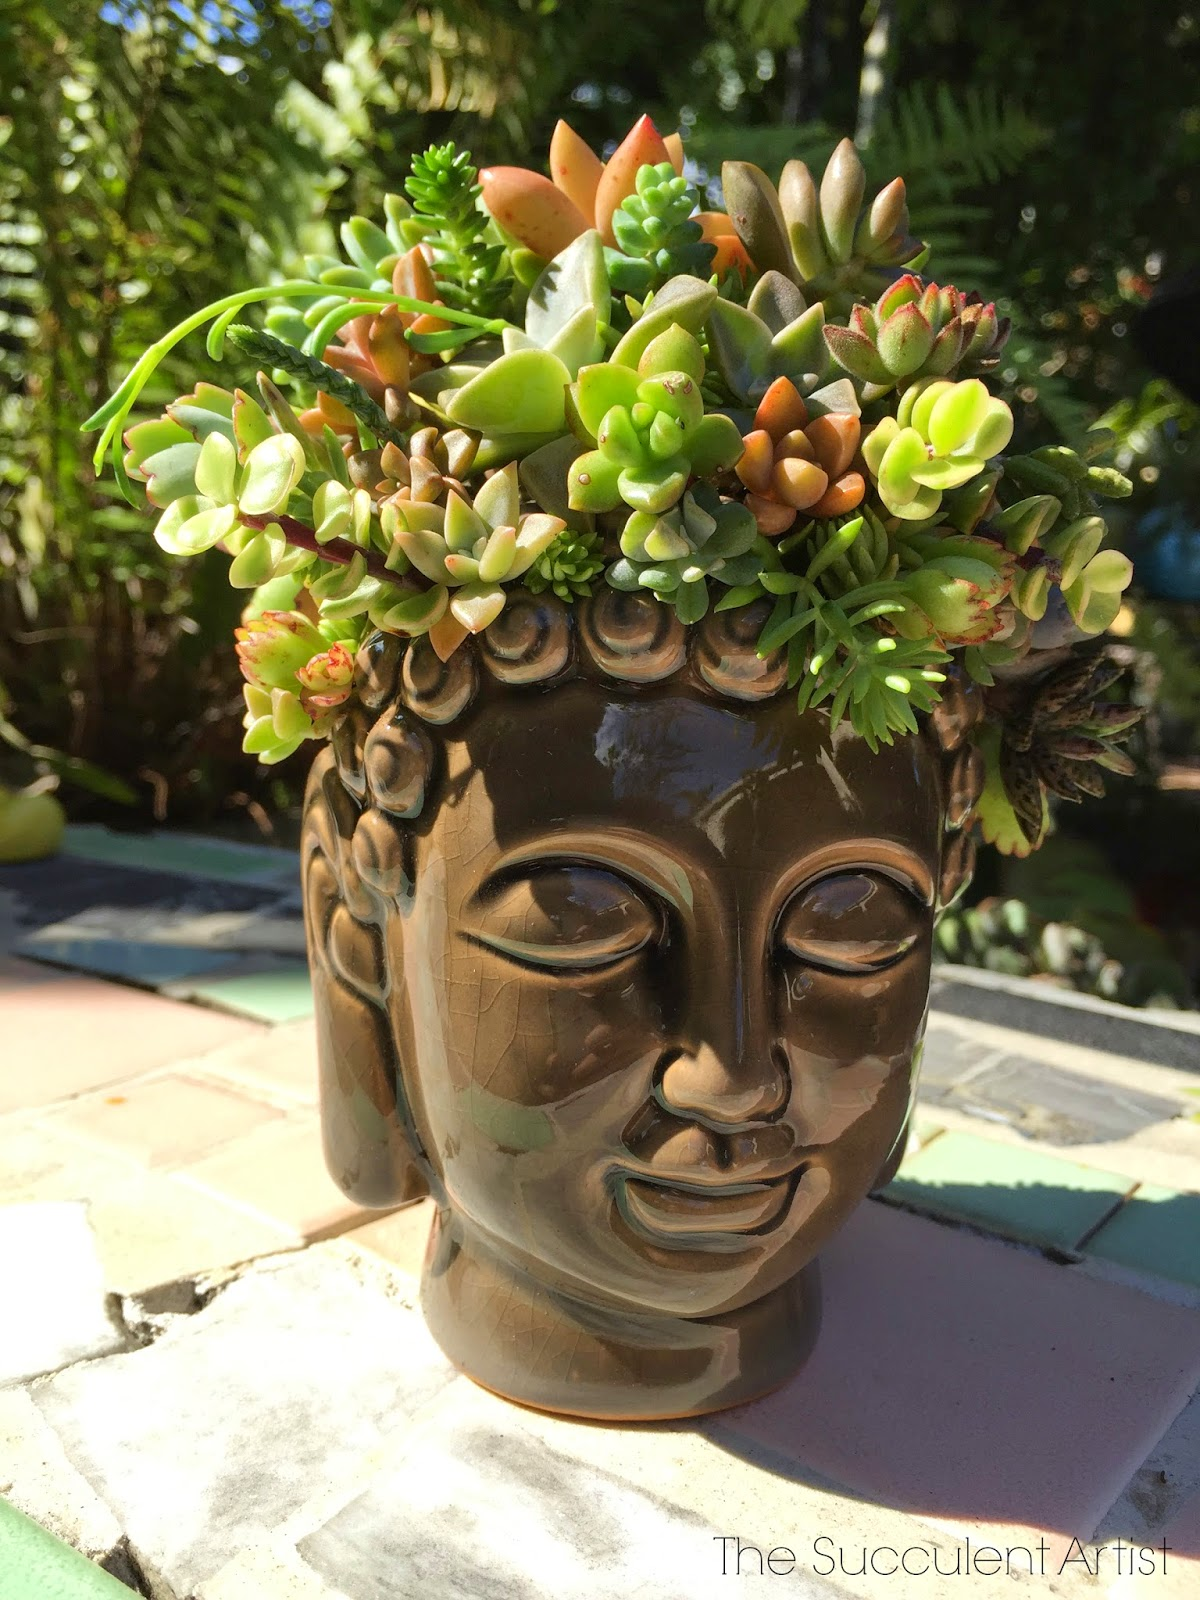 It Looks Wonderful Next To My Other Garden Buddhas, For Example: